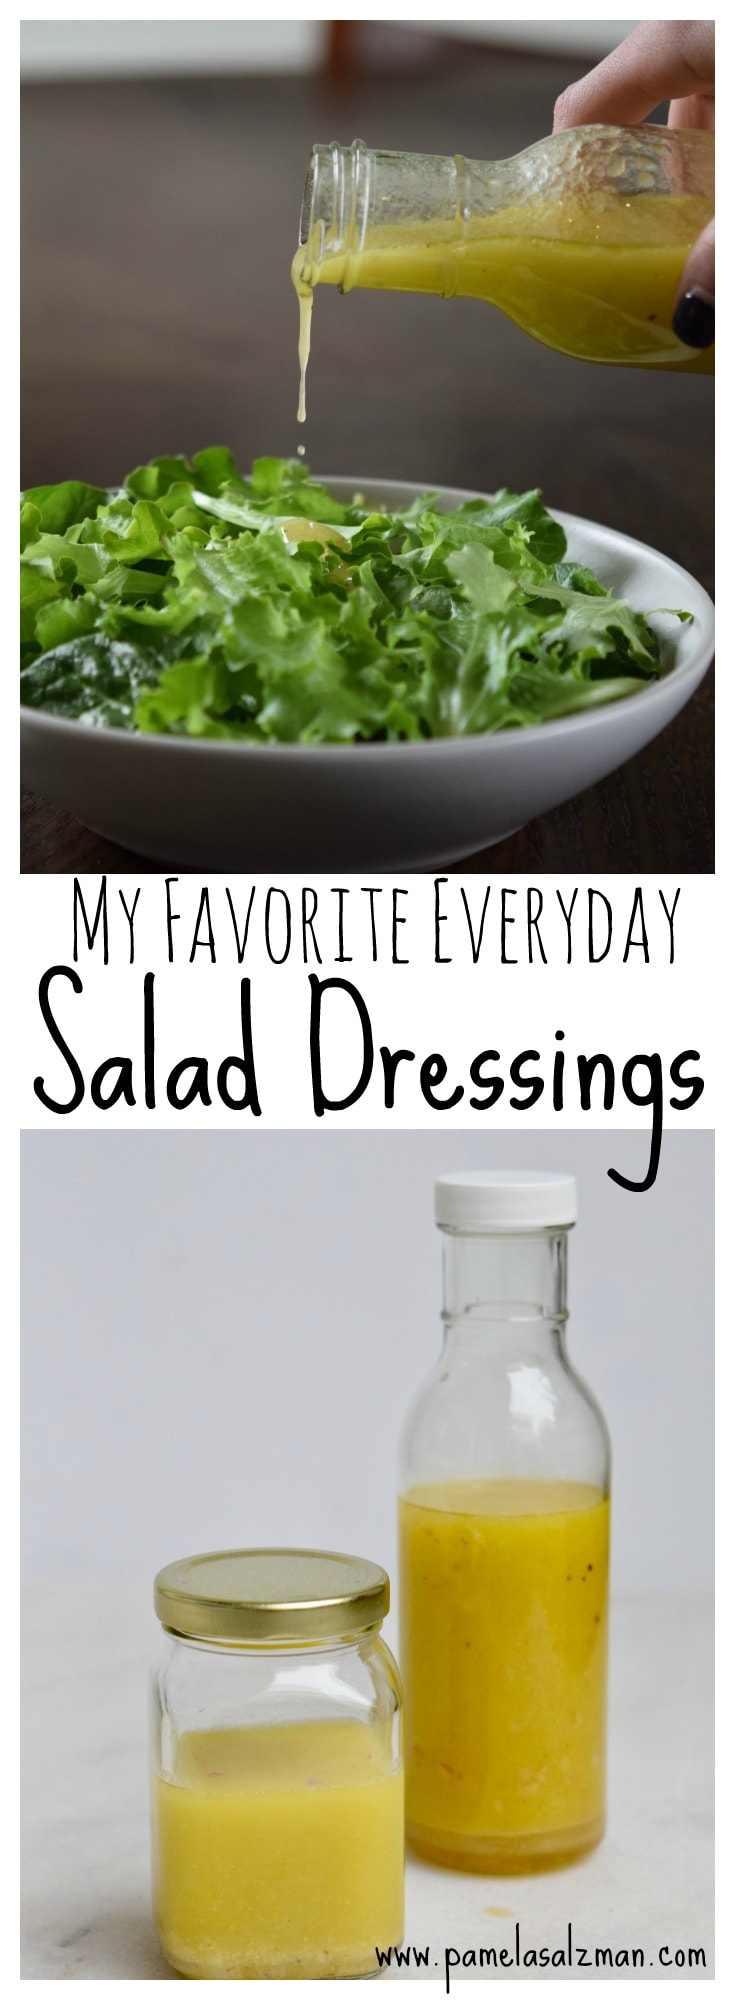 My Favorite Everyday Salad Dressings | Pamela Salzman